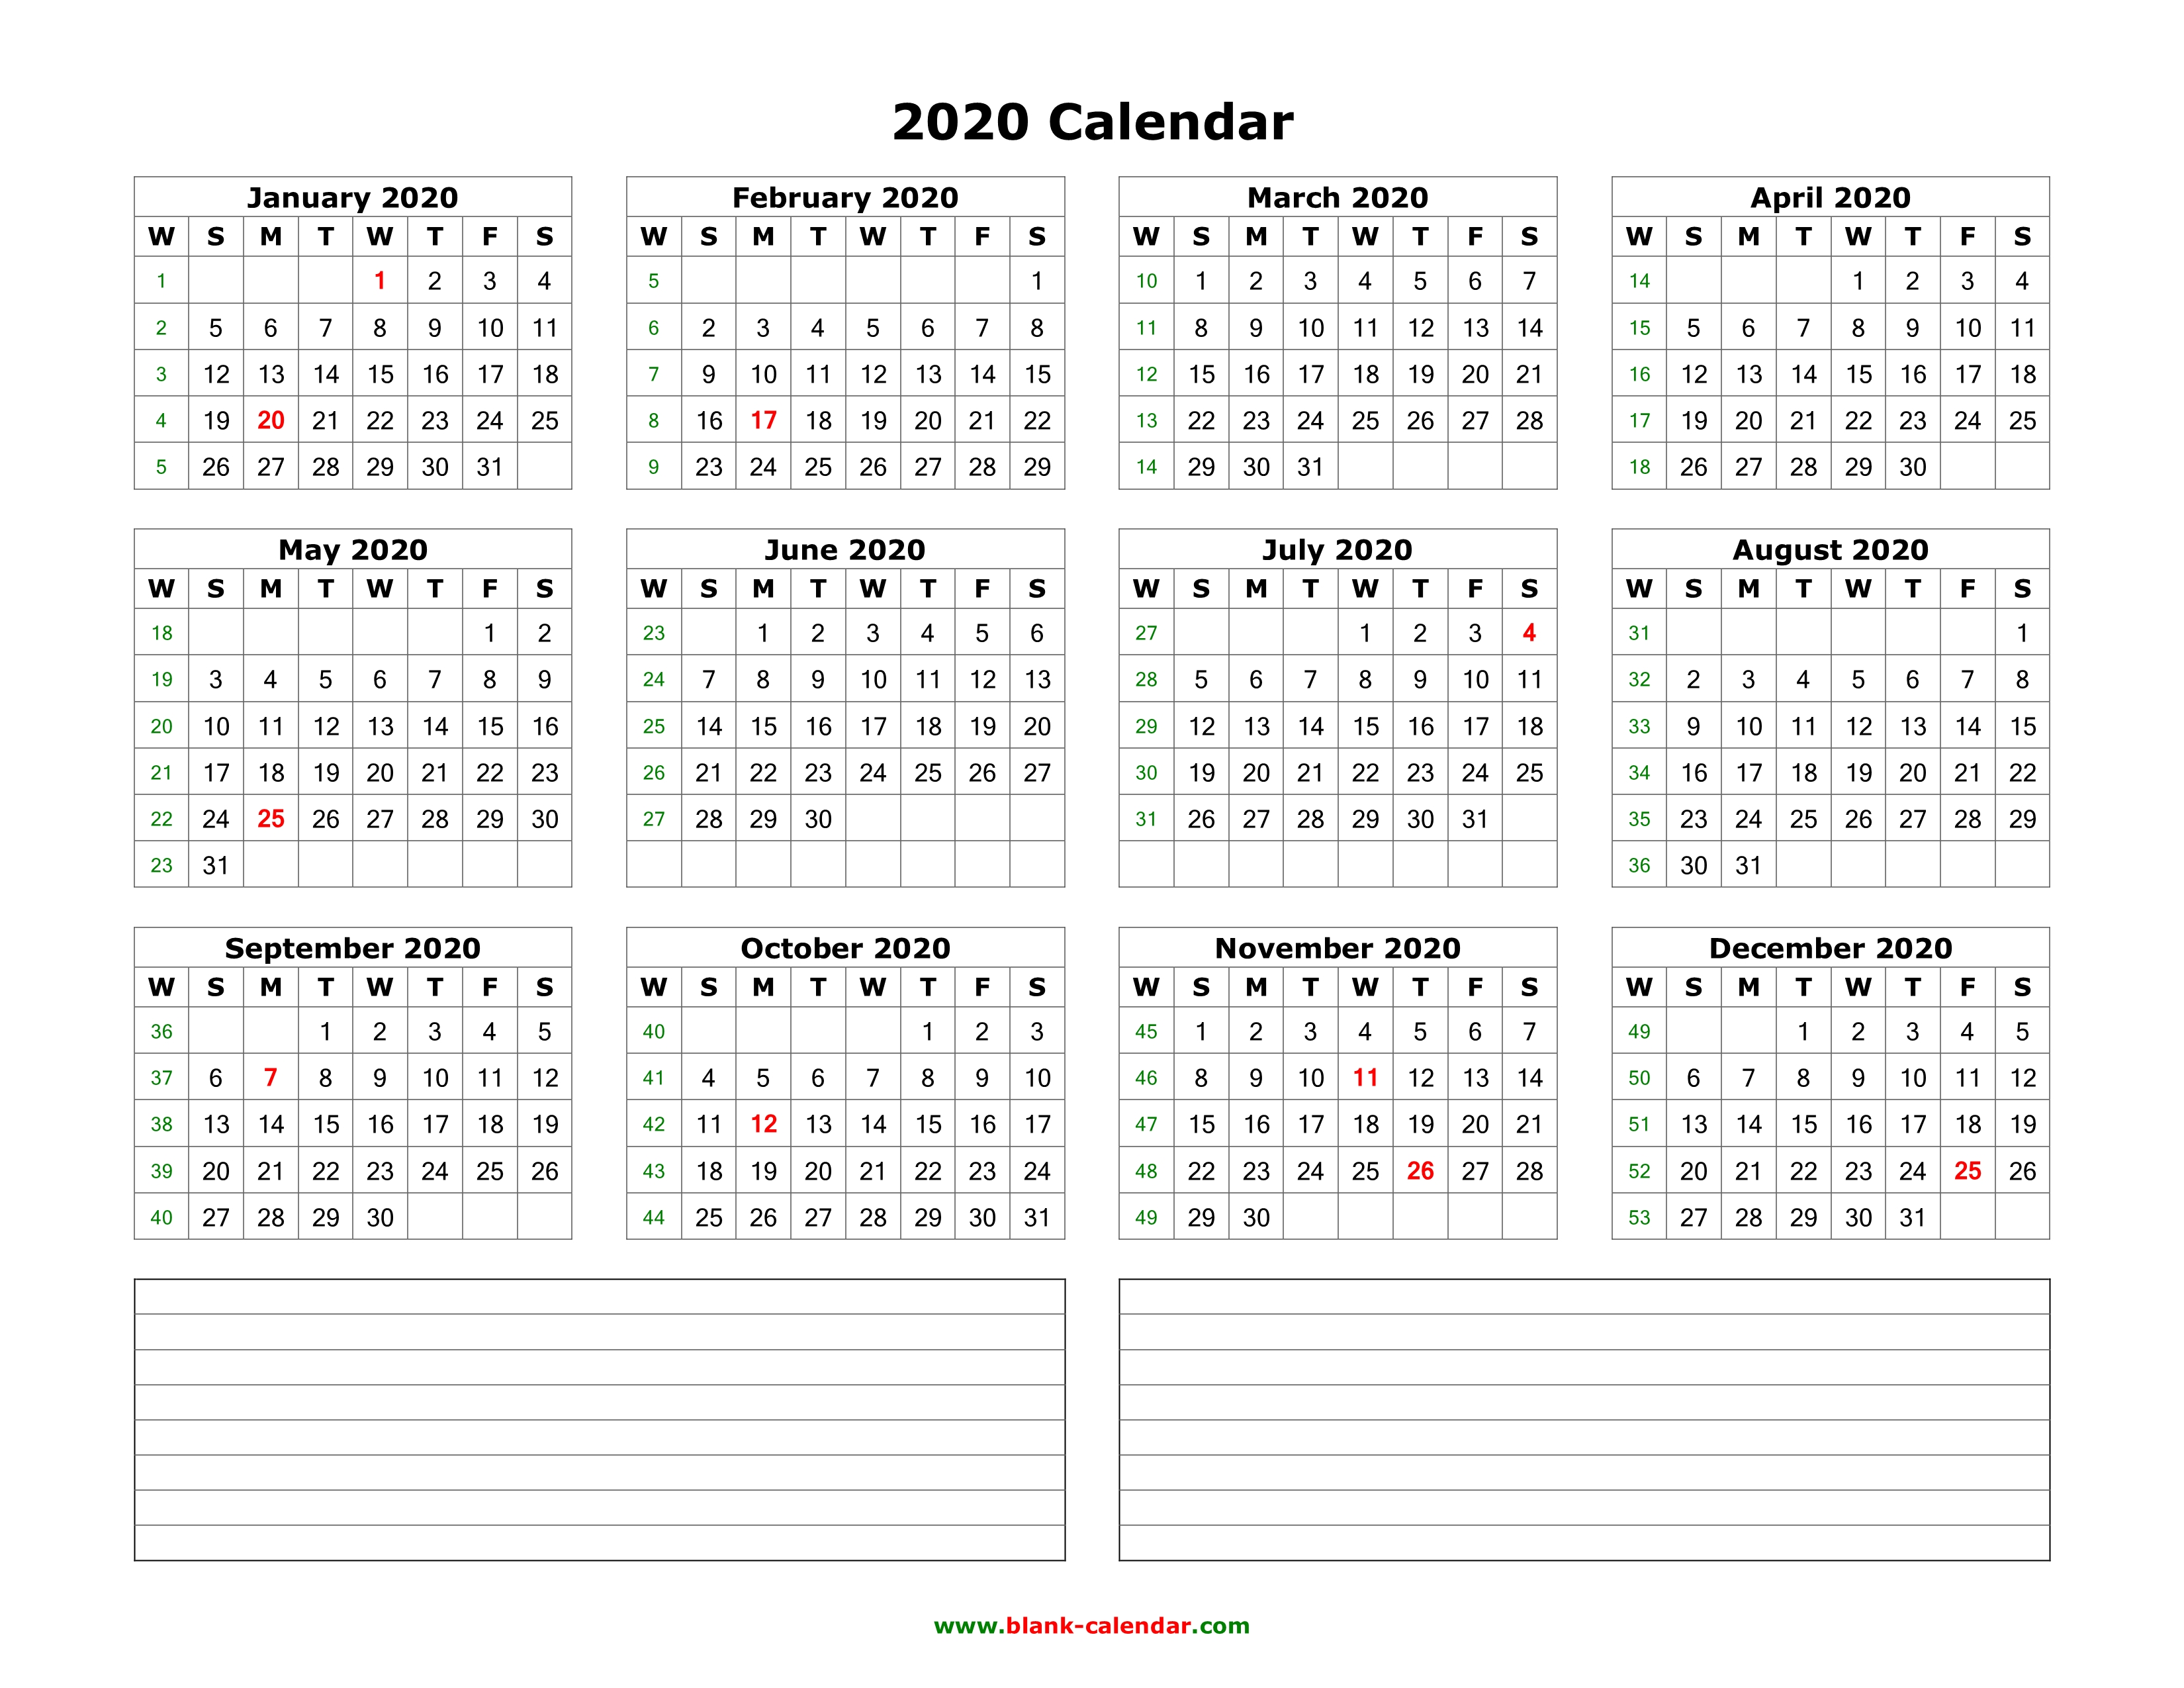 Blank Calendar For 2020 Download Blank Calendar 2020 with Space for Notes (12 months on